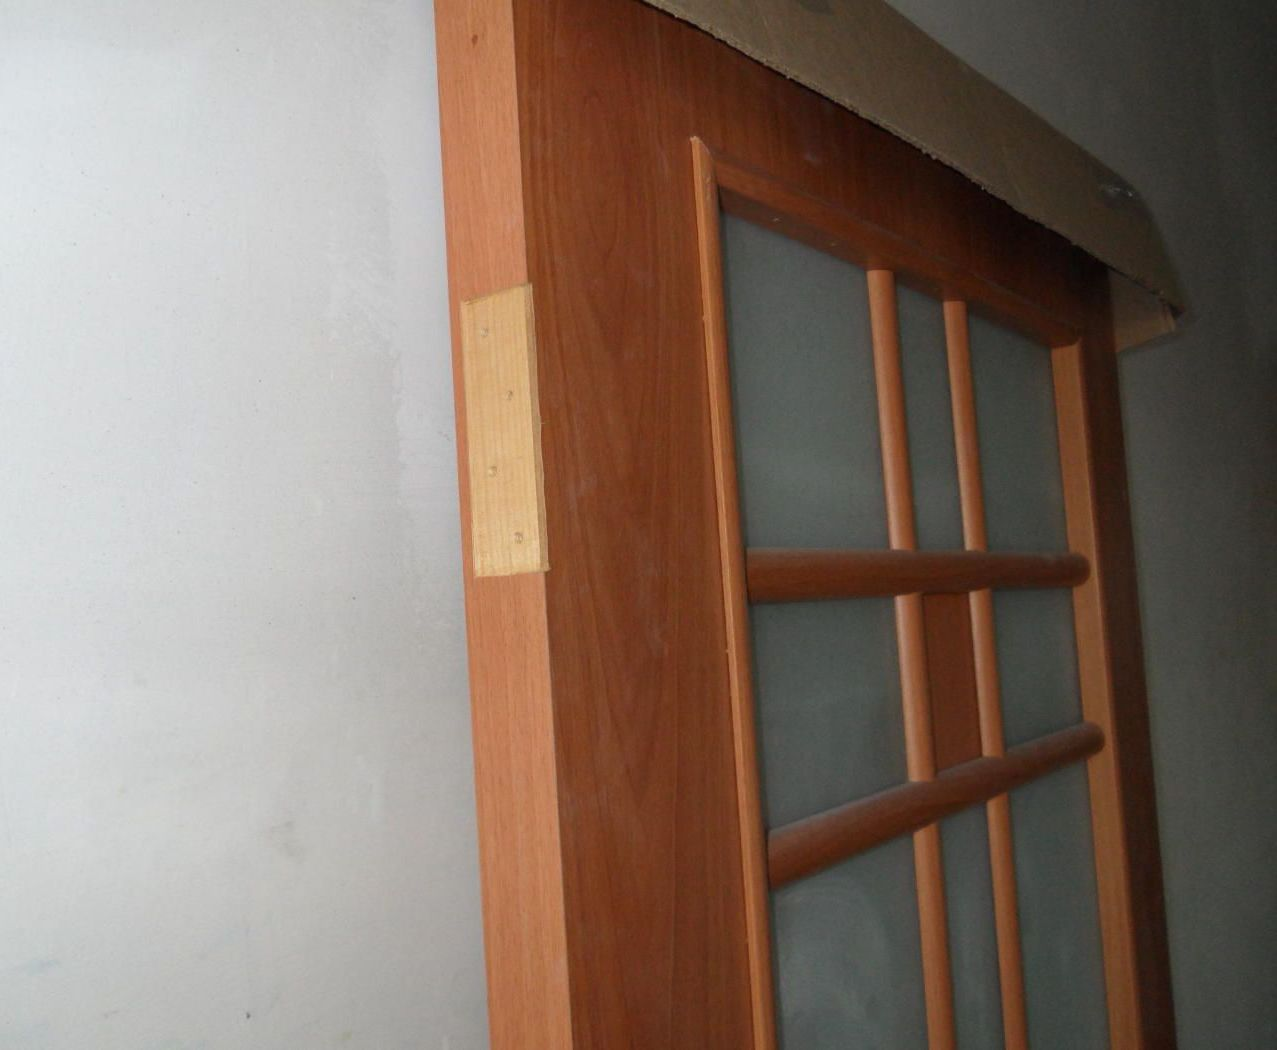 Laminated interior door before installation